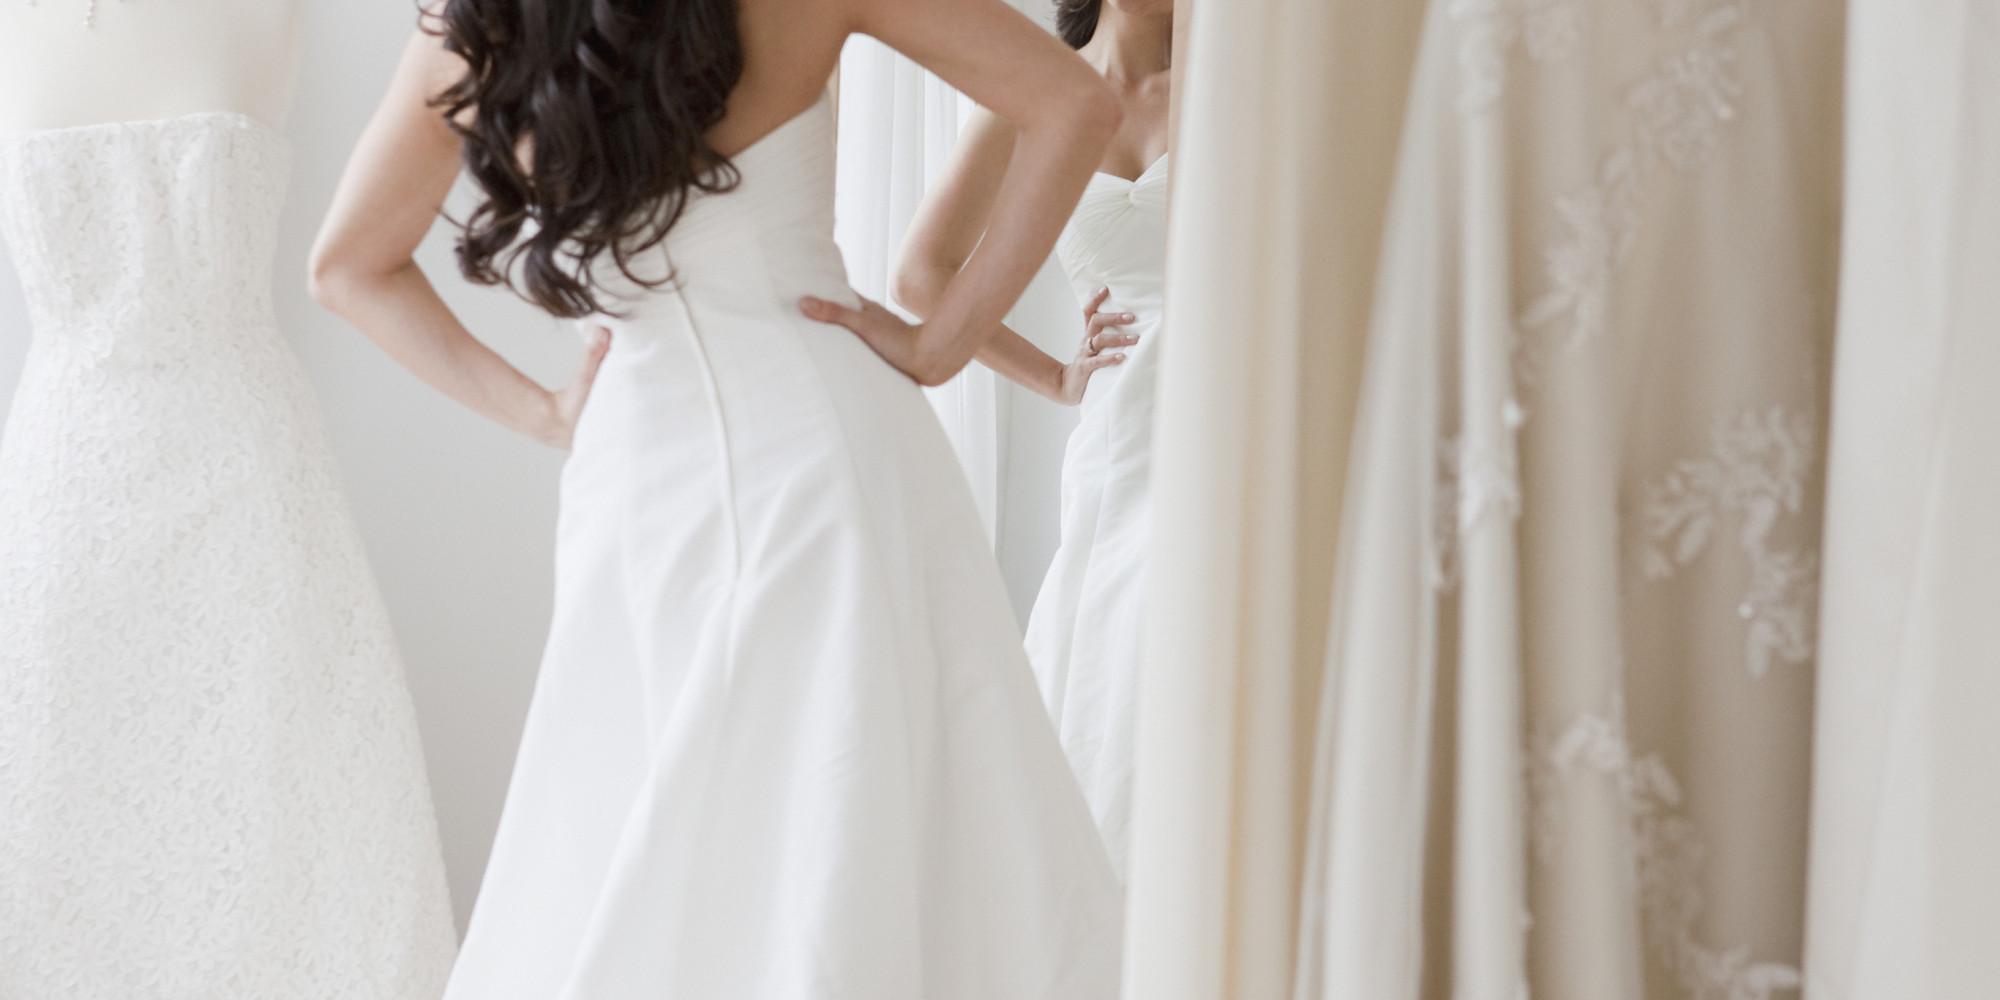 7 Things Savvy Brides Need To Know When Wedding Dress